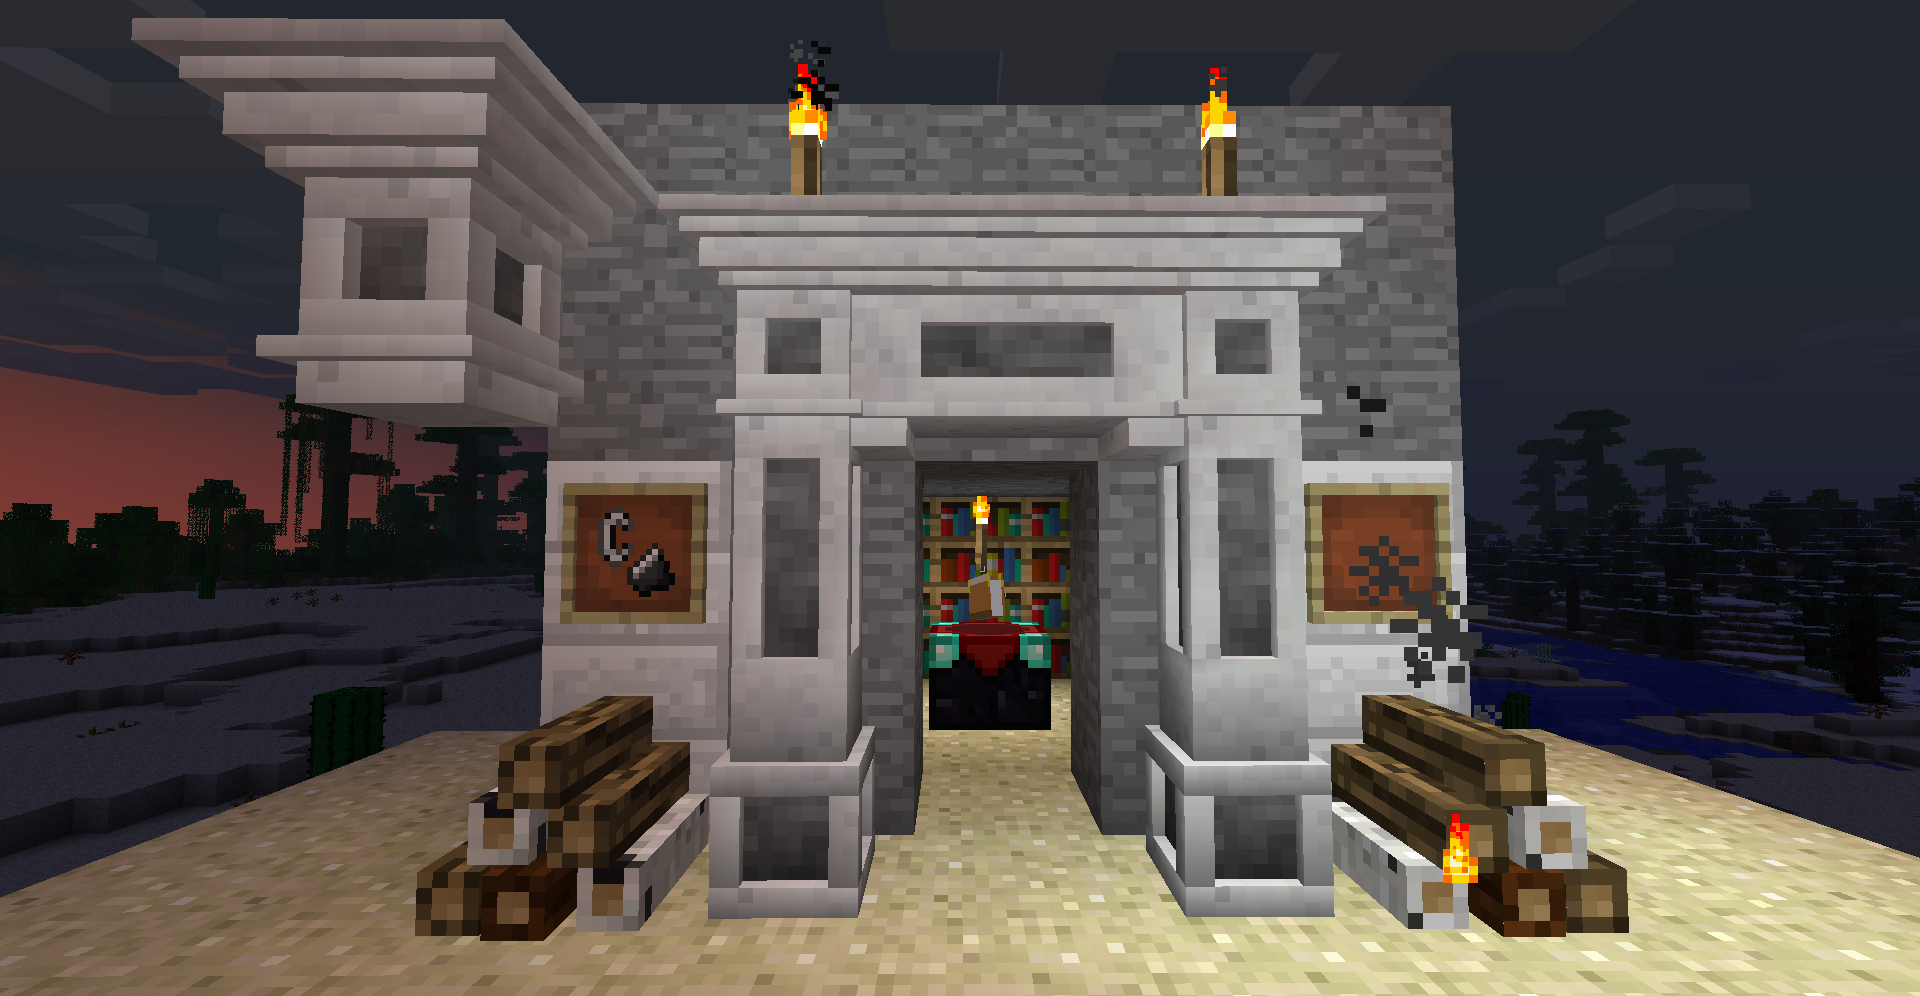 auto-draft-13794-4 Decorative Marble and Decorative Chimneys Mod 1.7.10/1.6.4